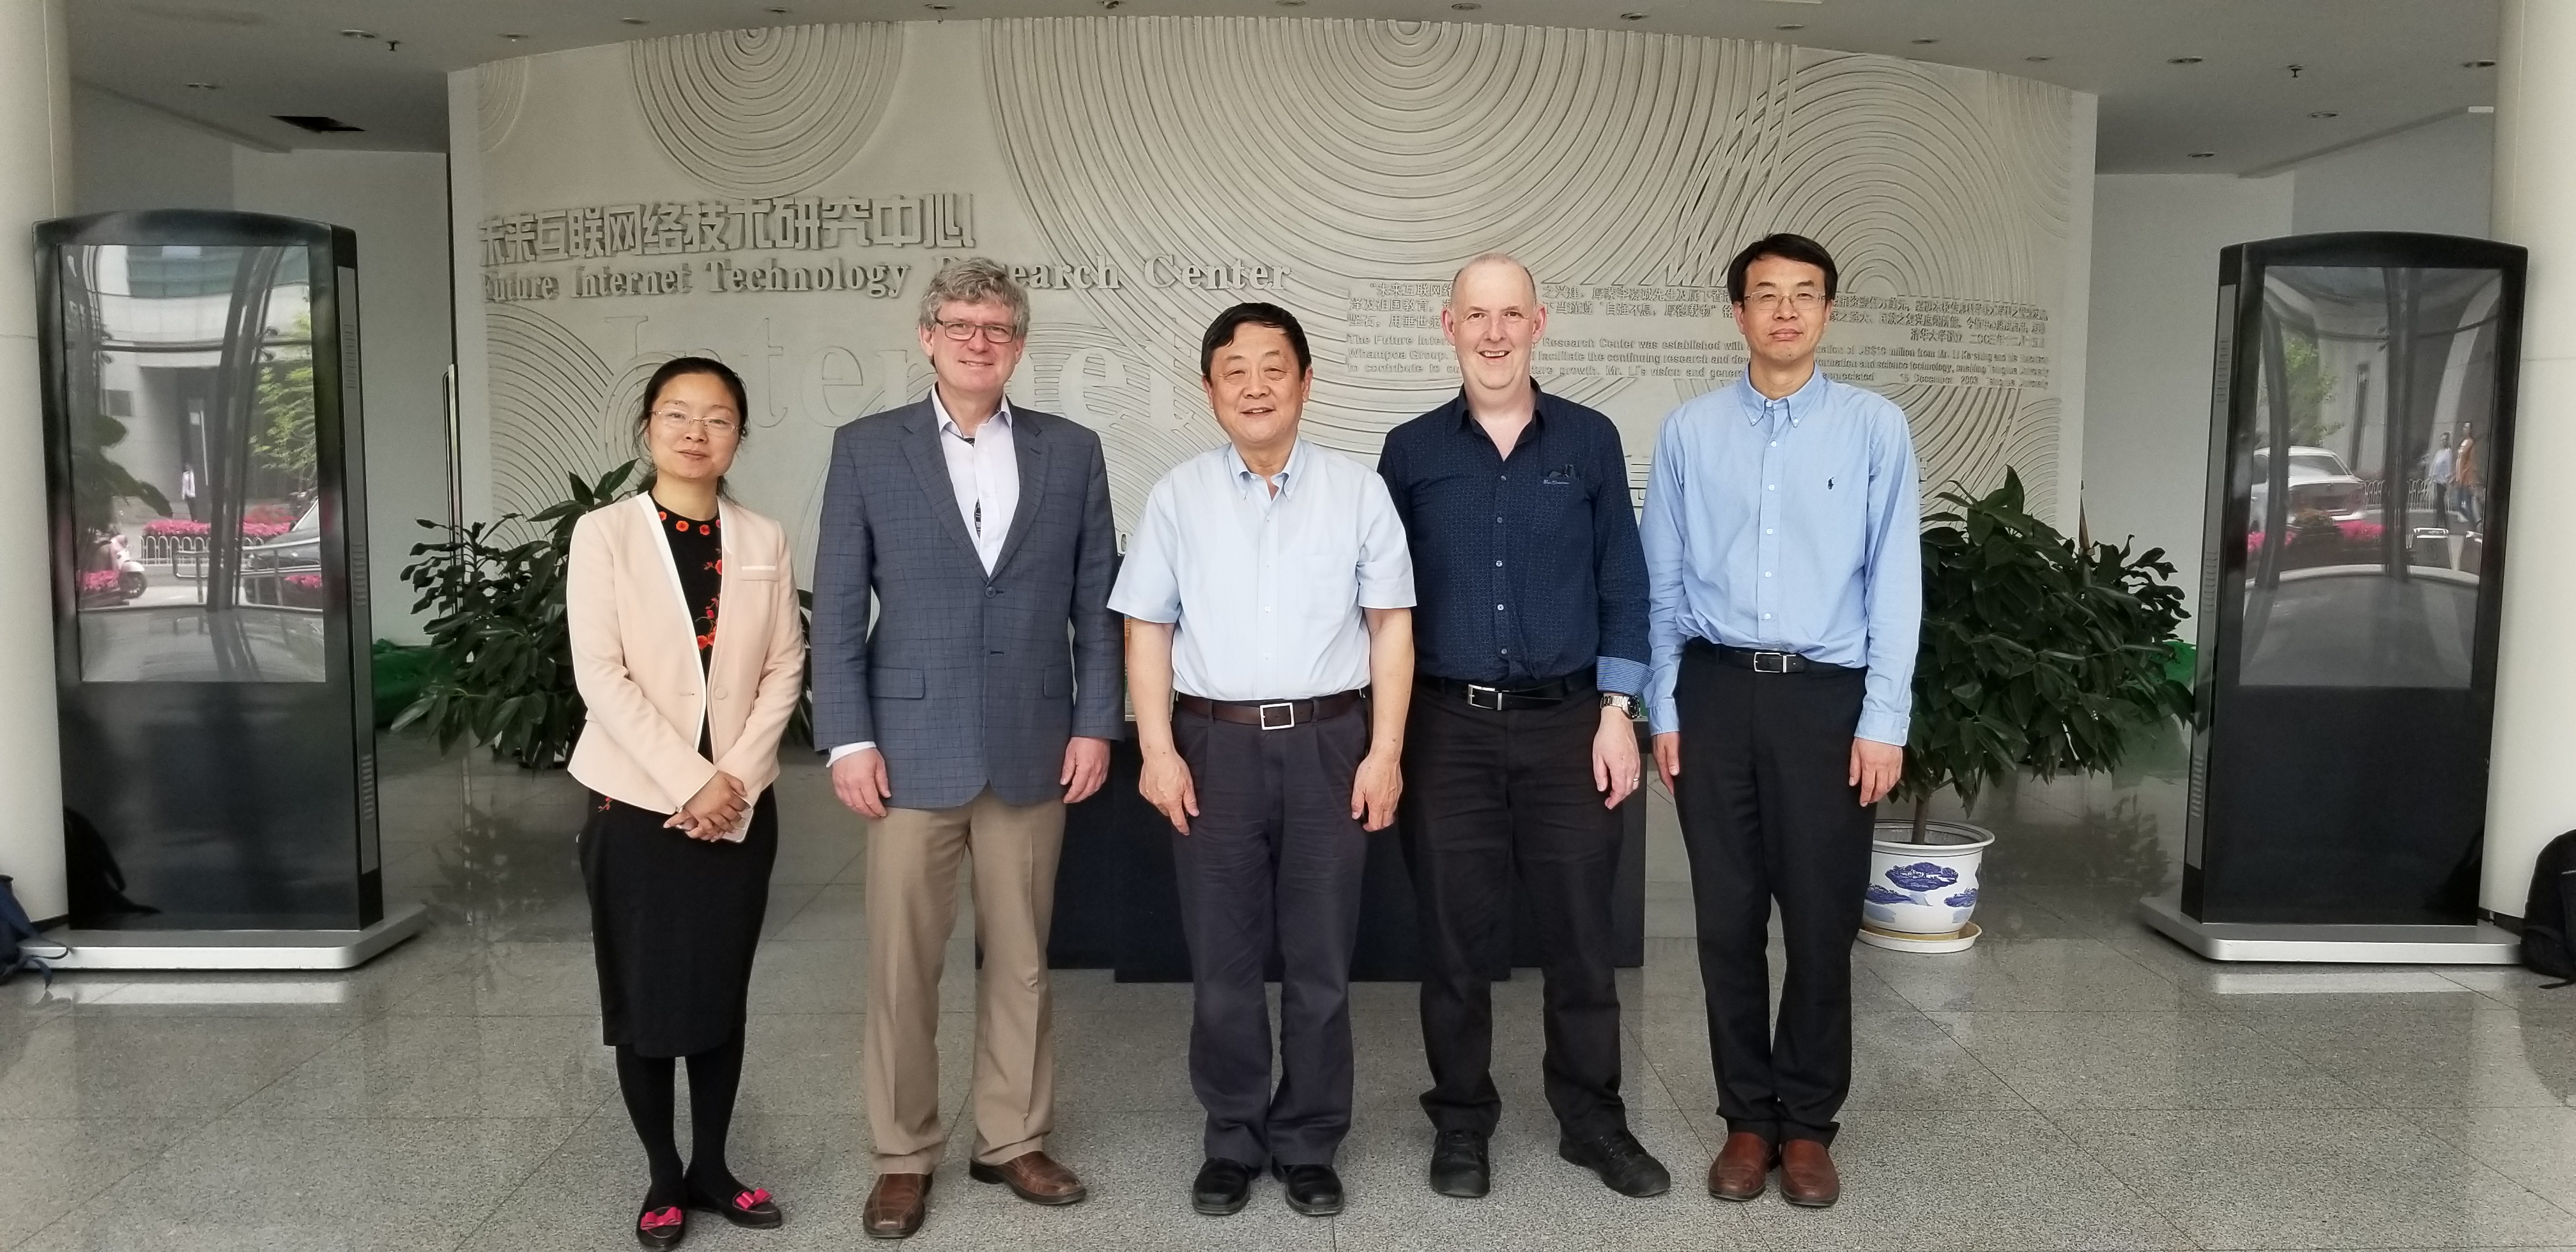 Dean of math, and director of CS visited to Tsinghua on 2019-05-15